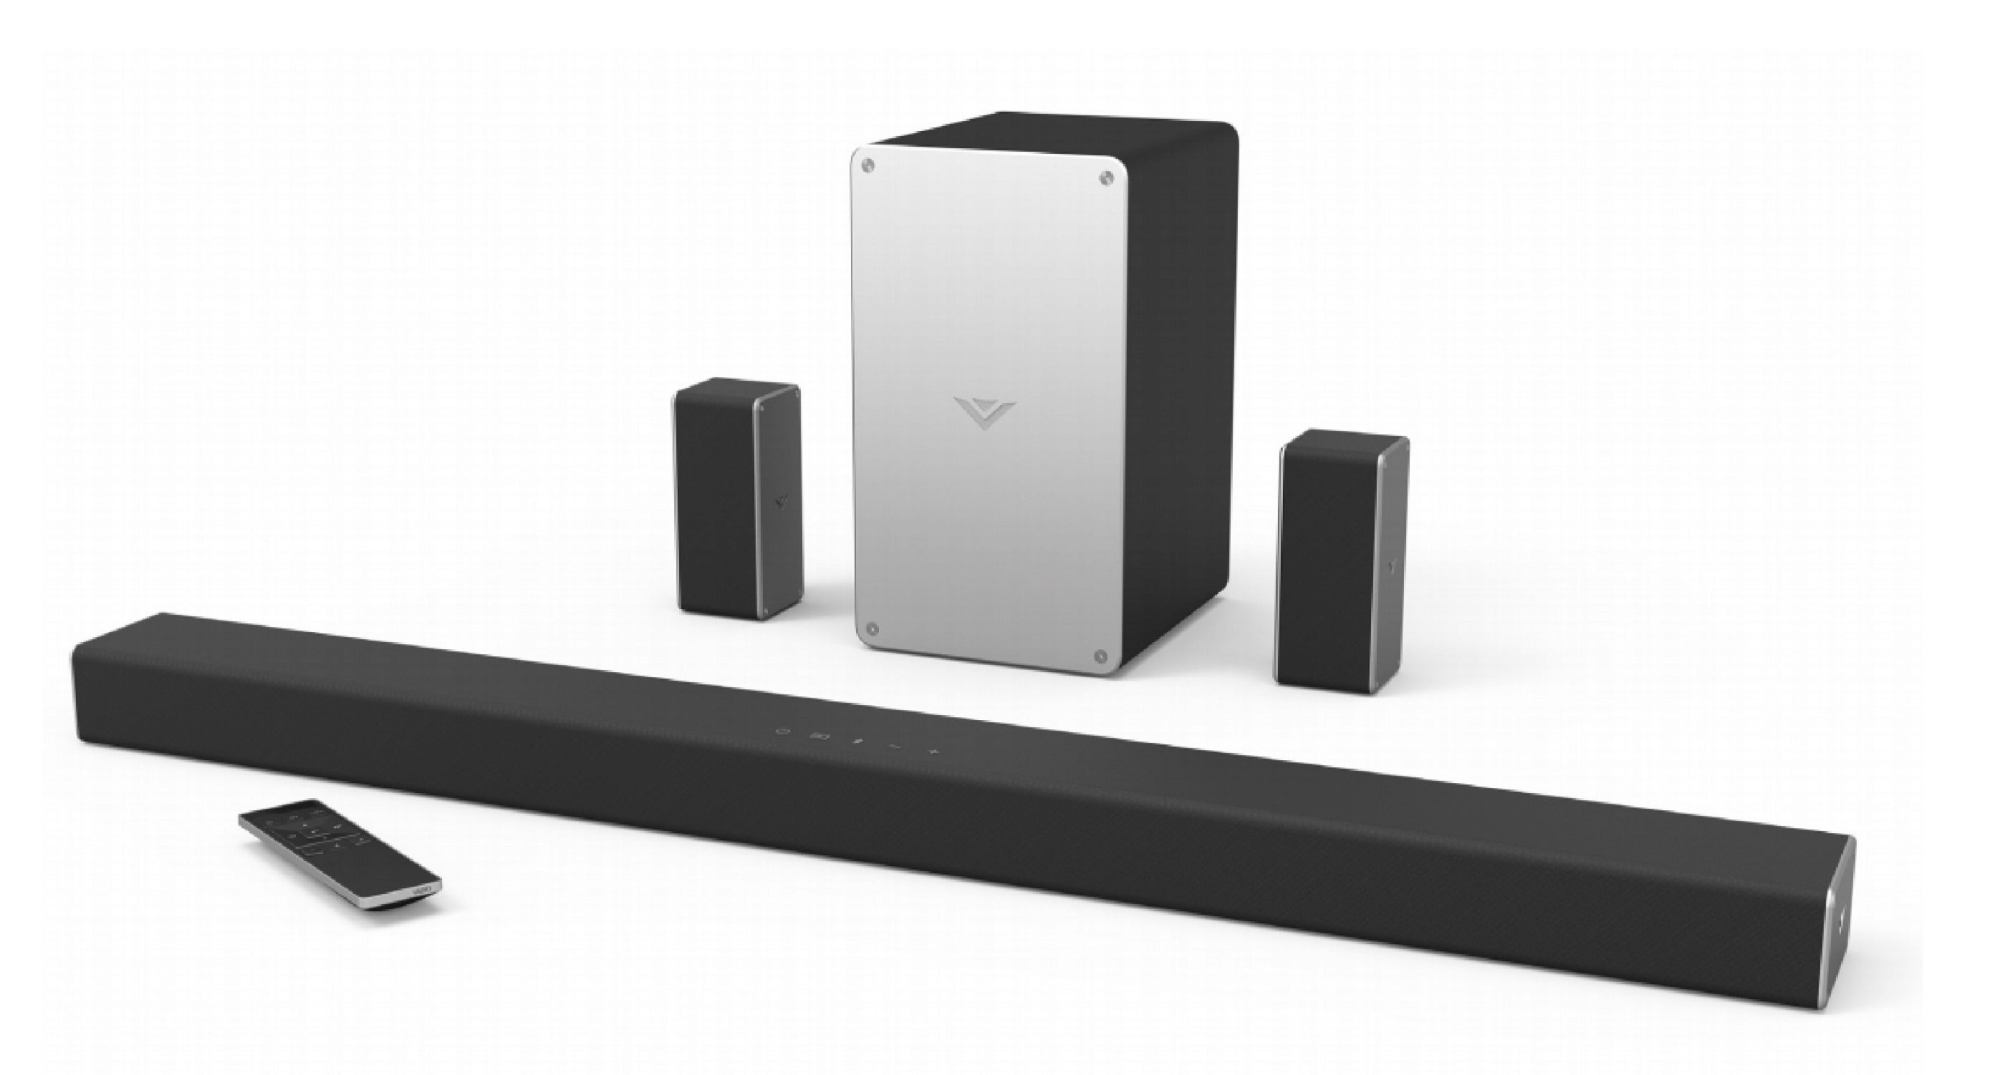 hight resolution of vizio smartcast sound bar model sb3651 e6 review the high tech feature set comes with a few sonic tradeoffs